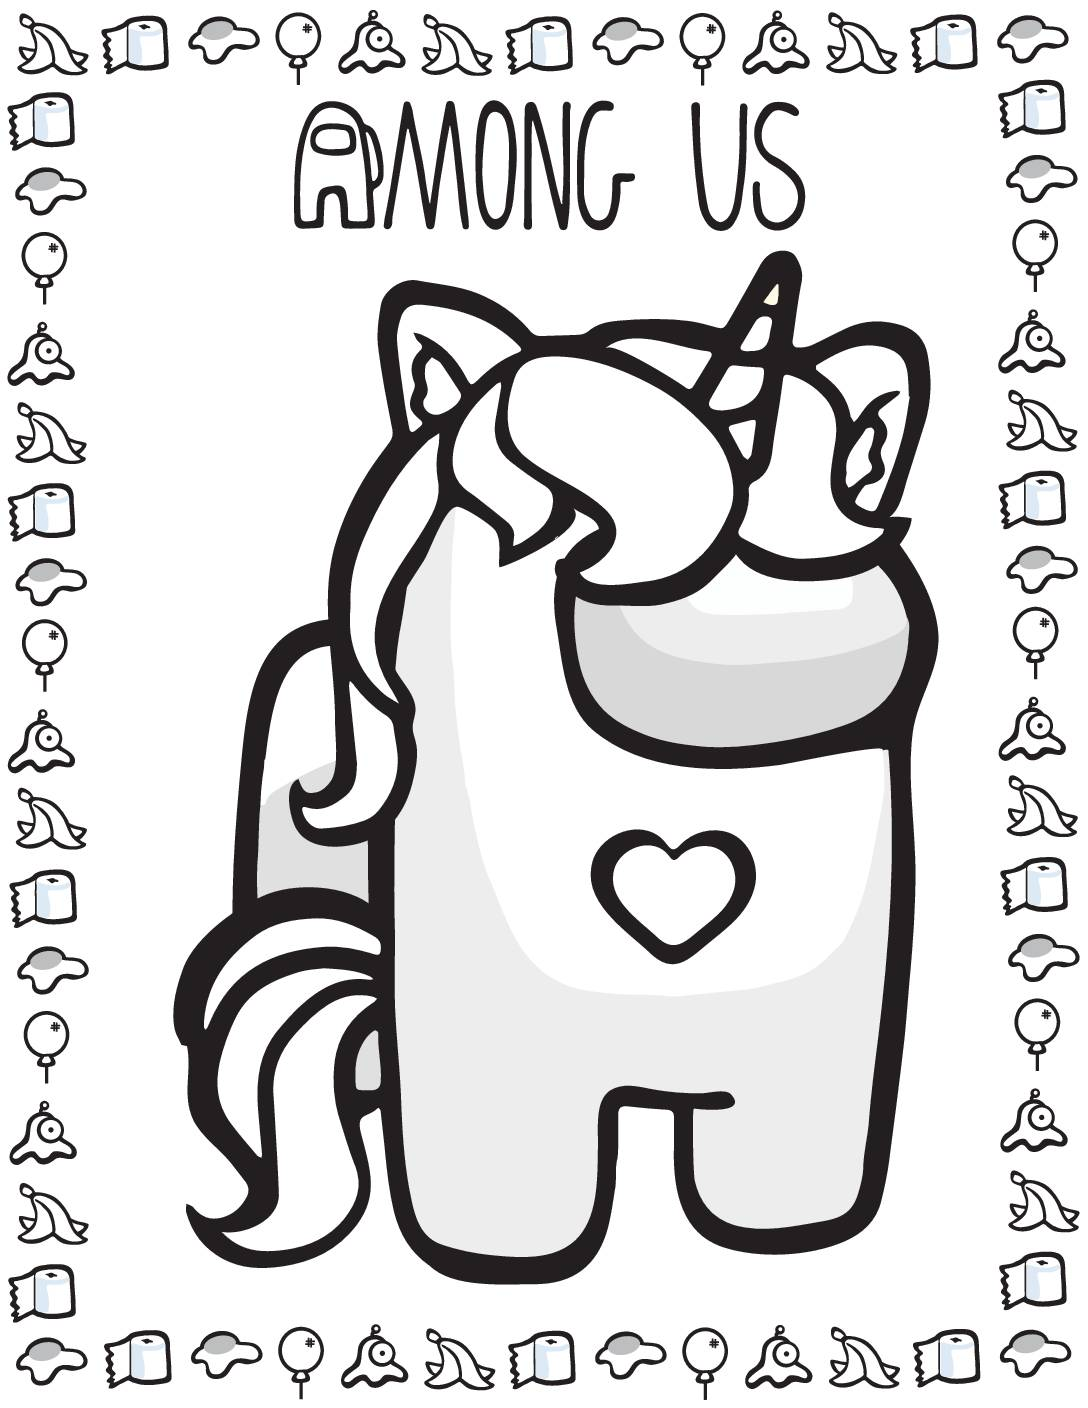 Coloring Page Among US